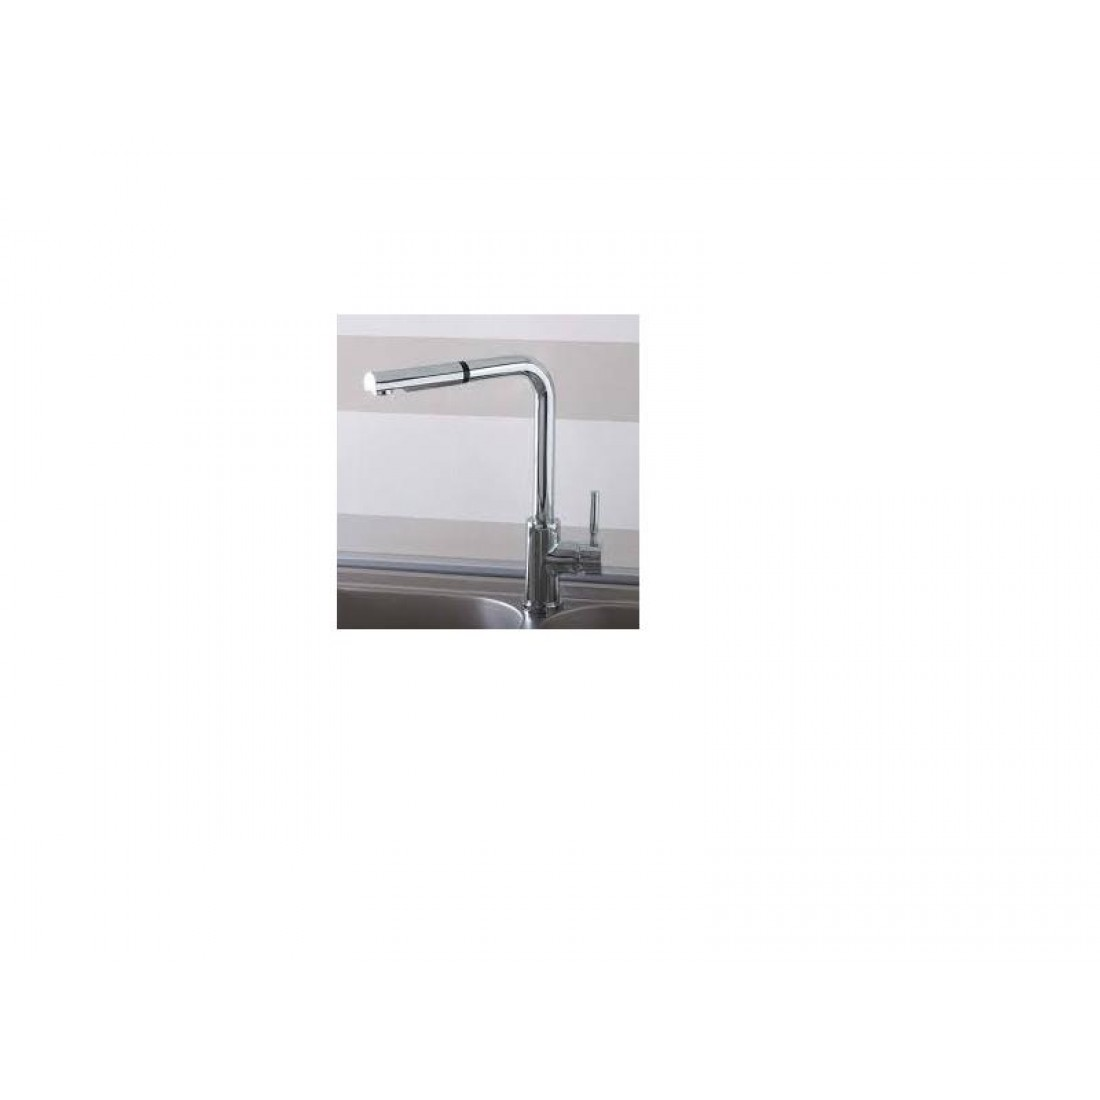 Praxis PRO DUS 1630 Sink Faucet With Detachable Shower Praxis